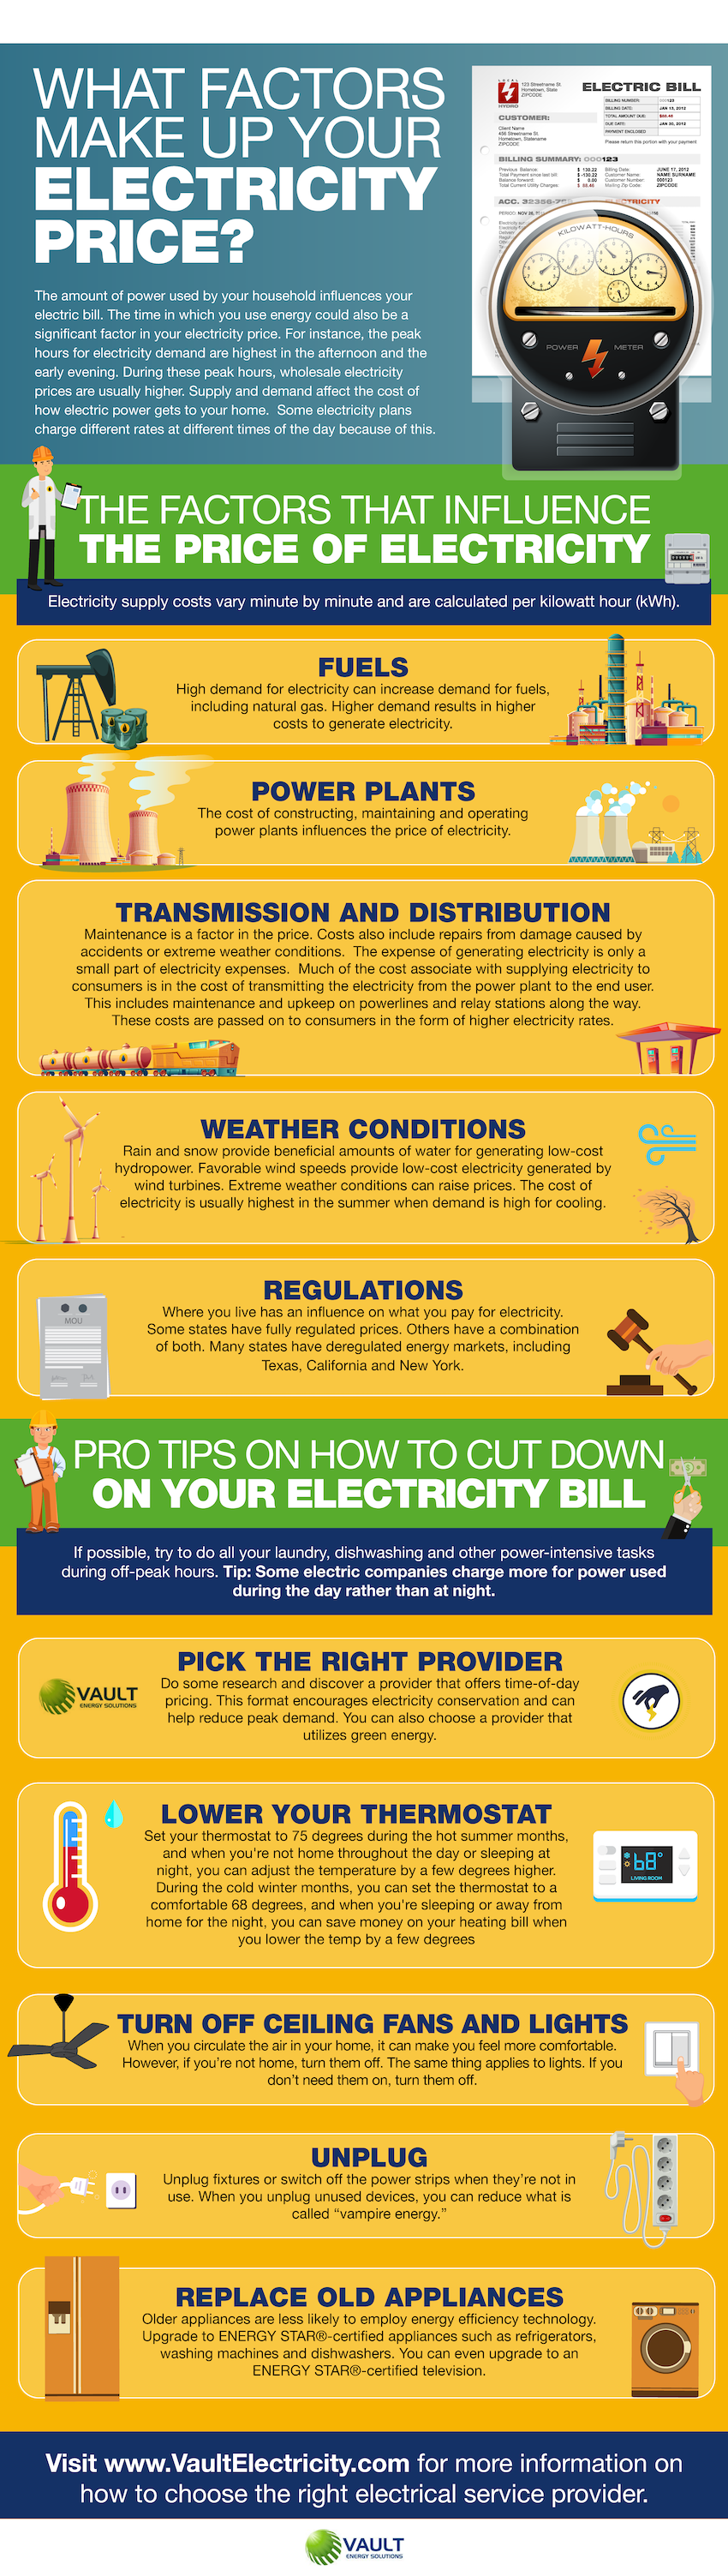 What Factors Make Up Your Electricity Price? #infographic